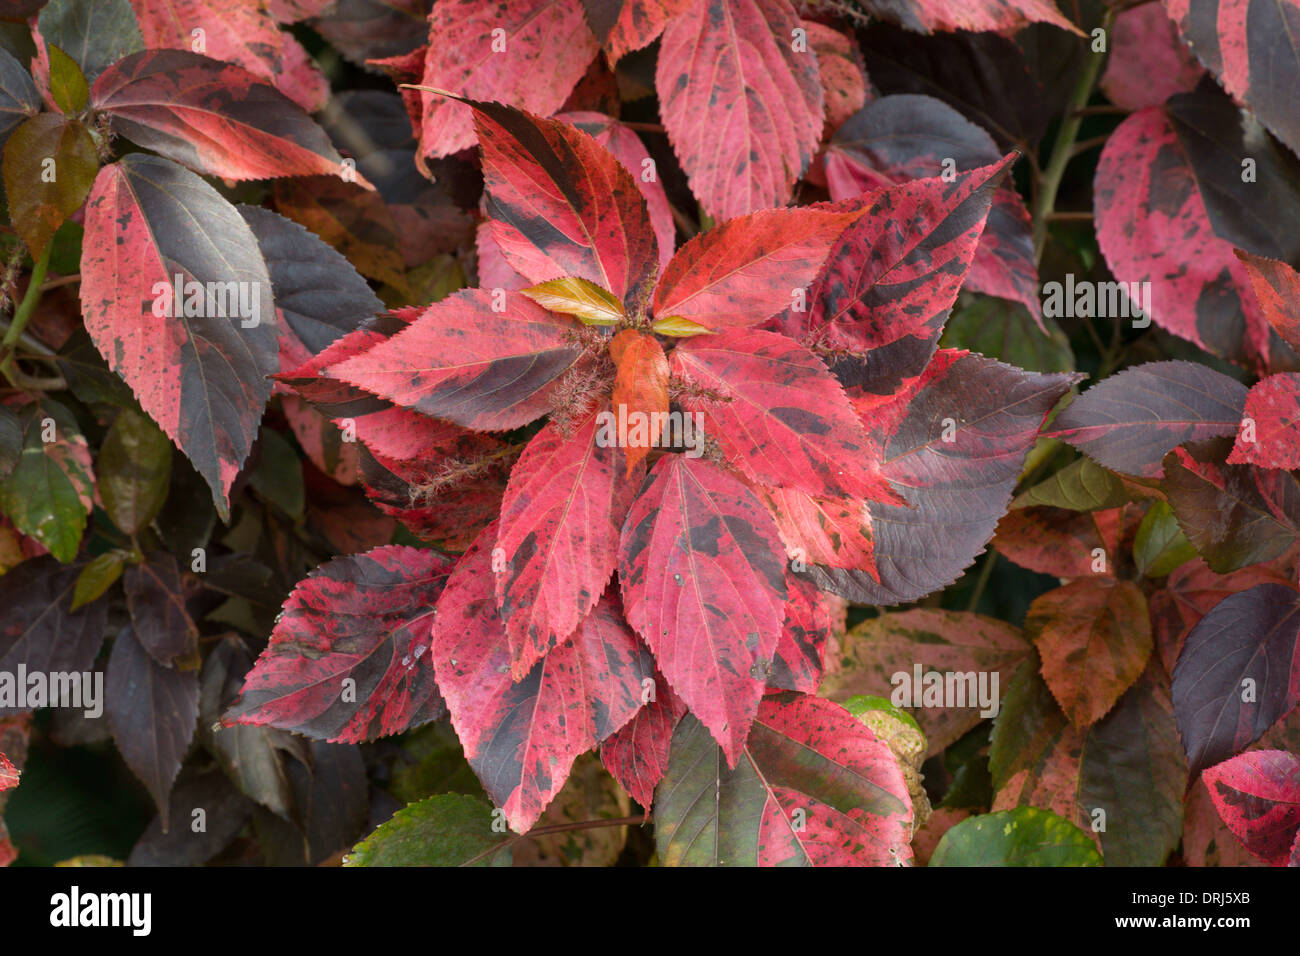 Closeup Of Red Leaves Of Copperleaf Acalypha Wilkesiana Plant Stock